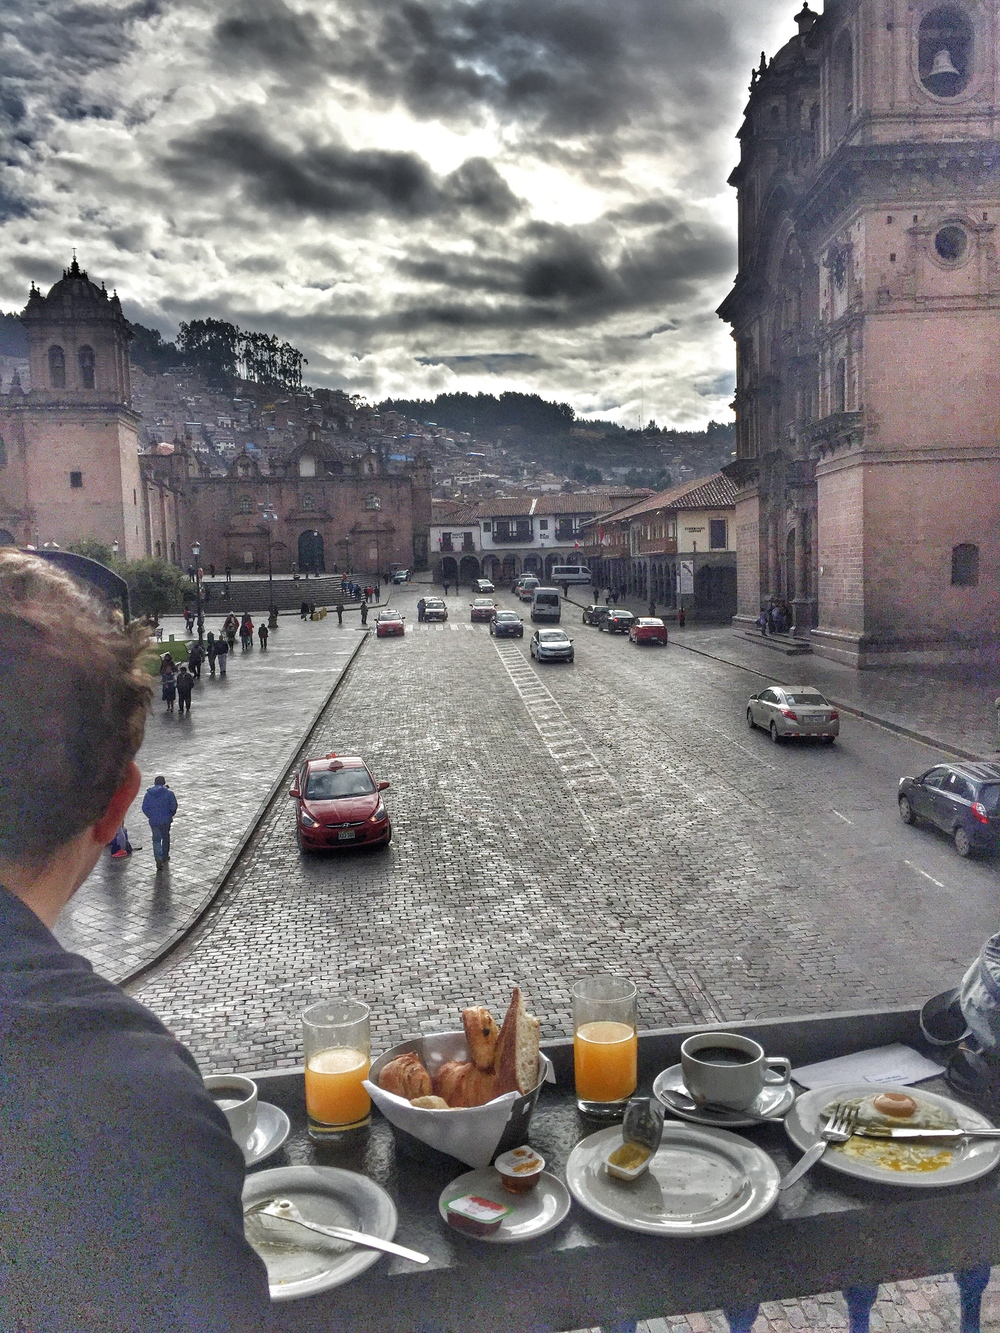 Breakfast with fresh squeezed orange juice overlooking the Plaza de Armas.